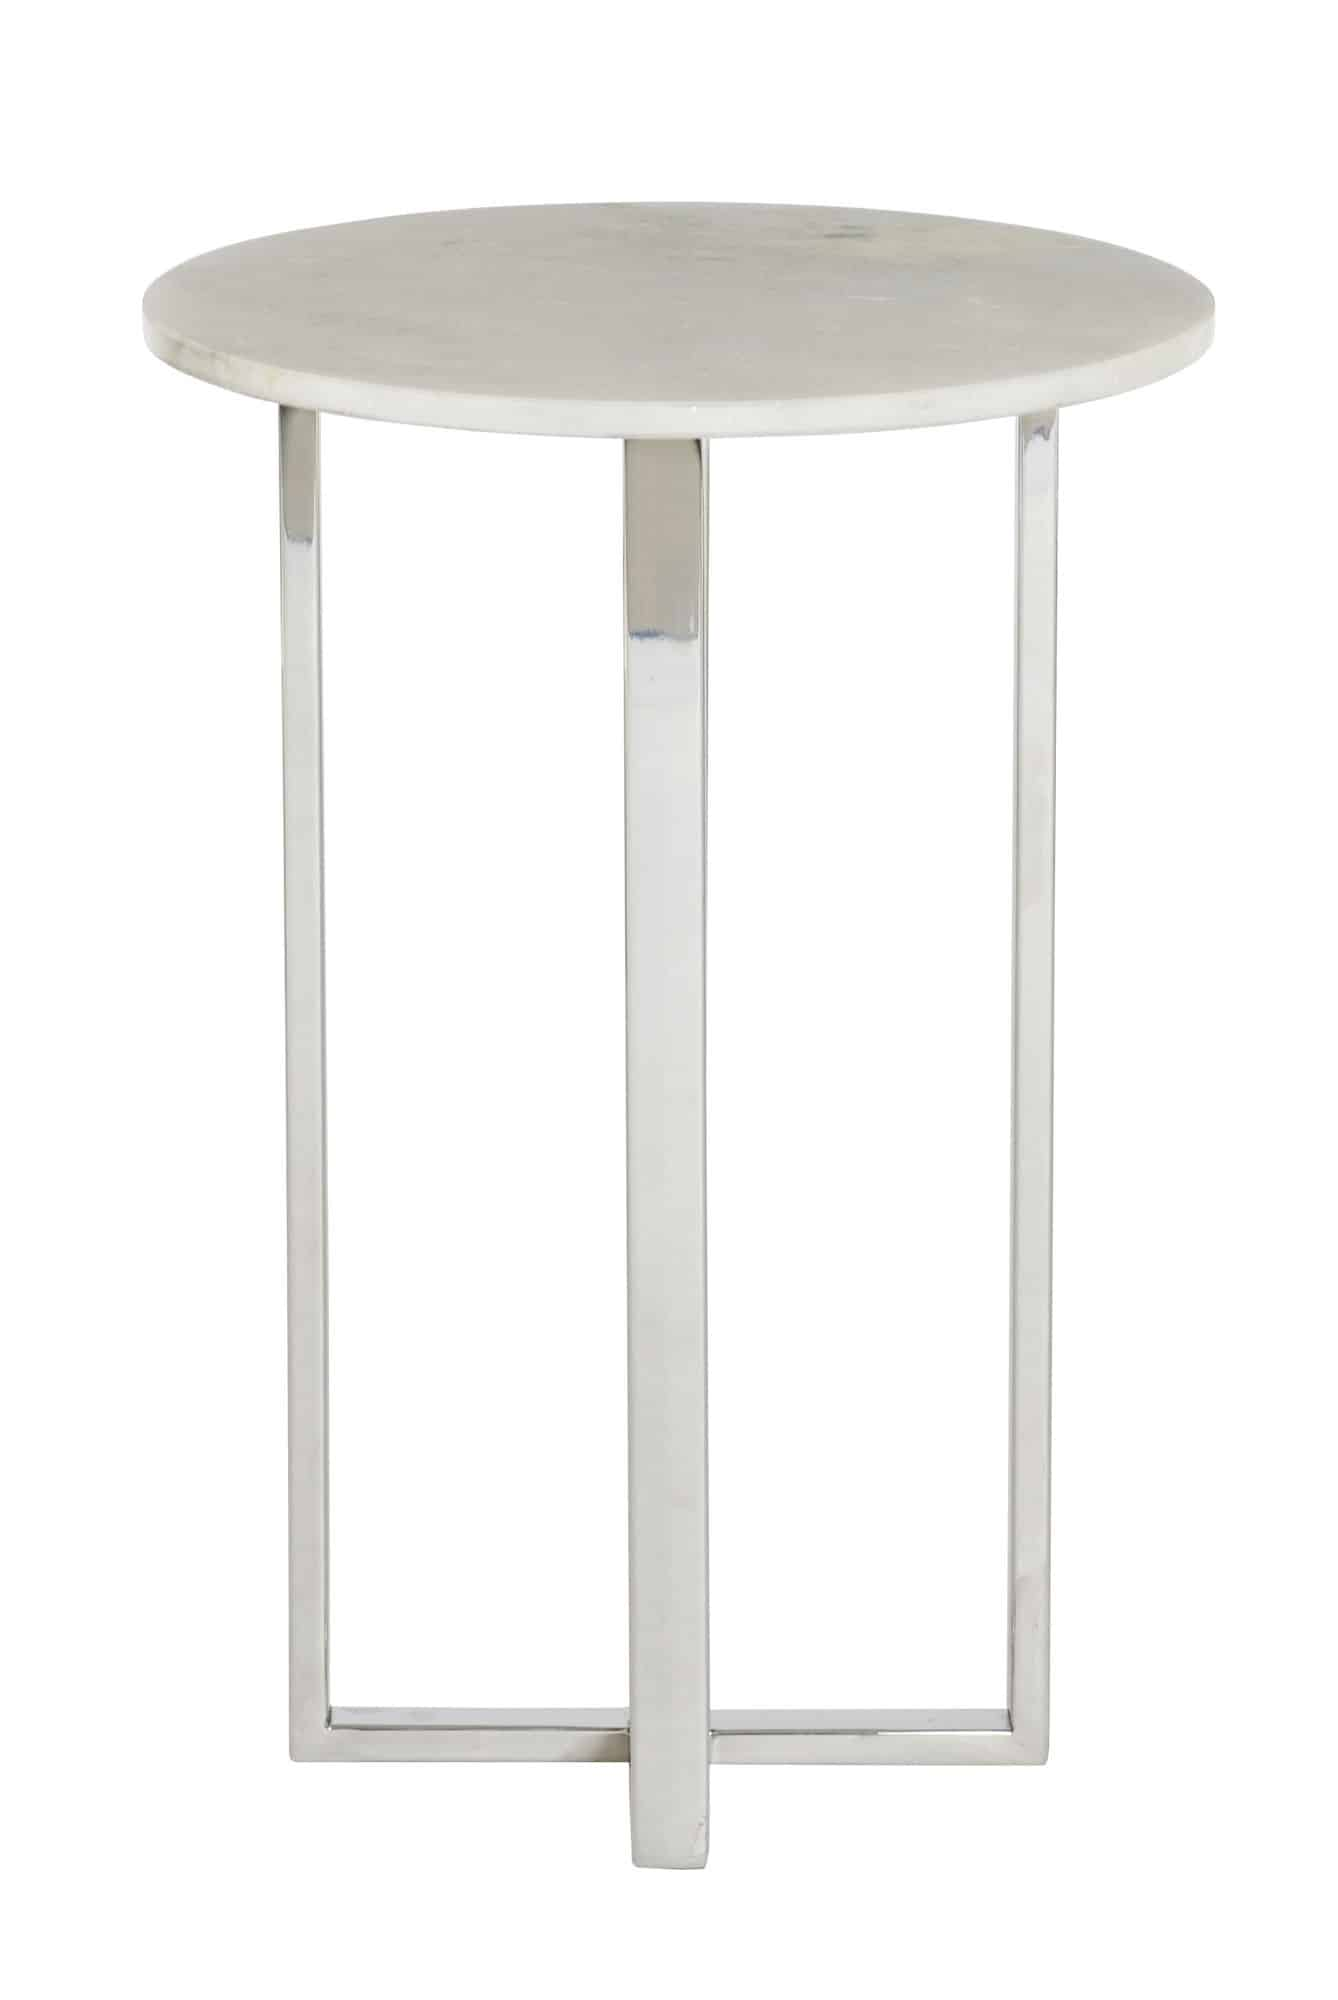 Alexi Chairside Table